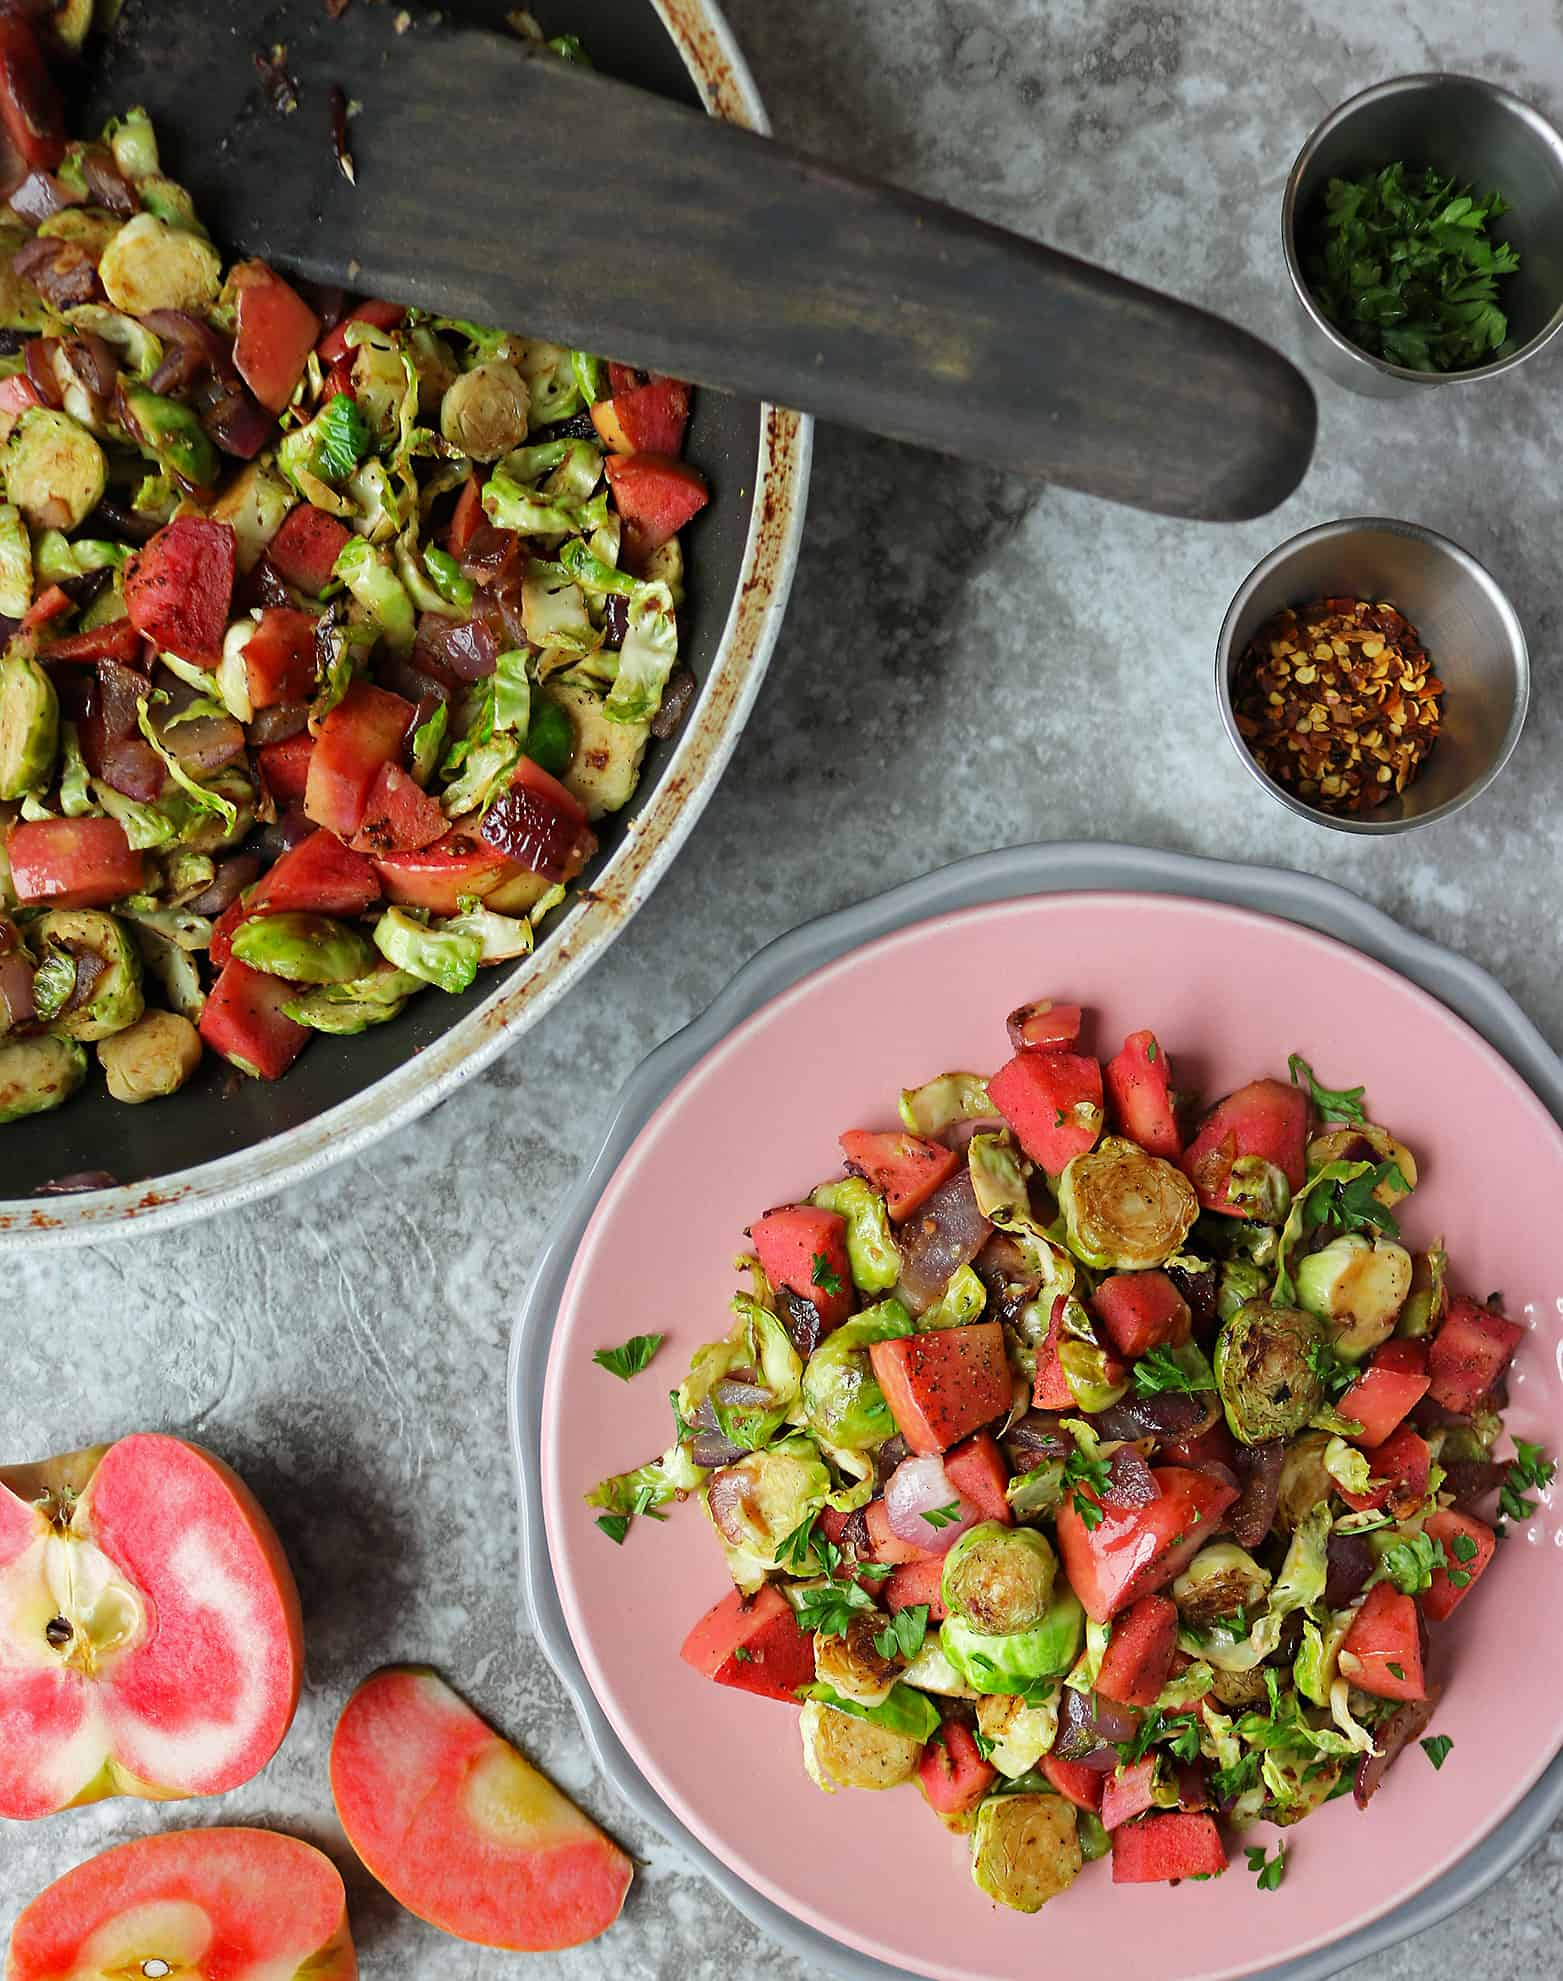 Warm Sautéed Brussels Sprouts And Apple Salad